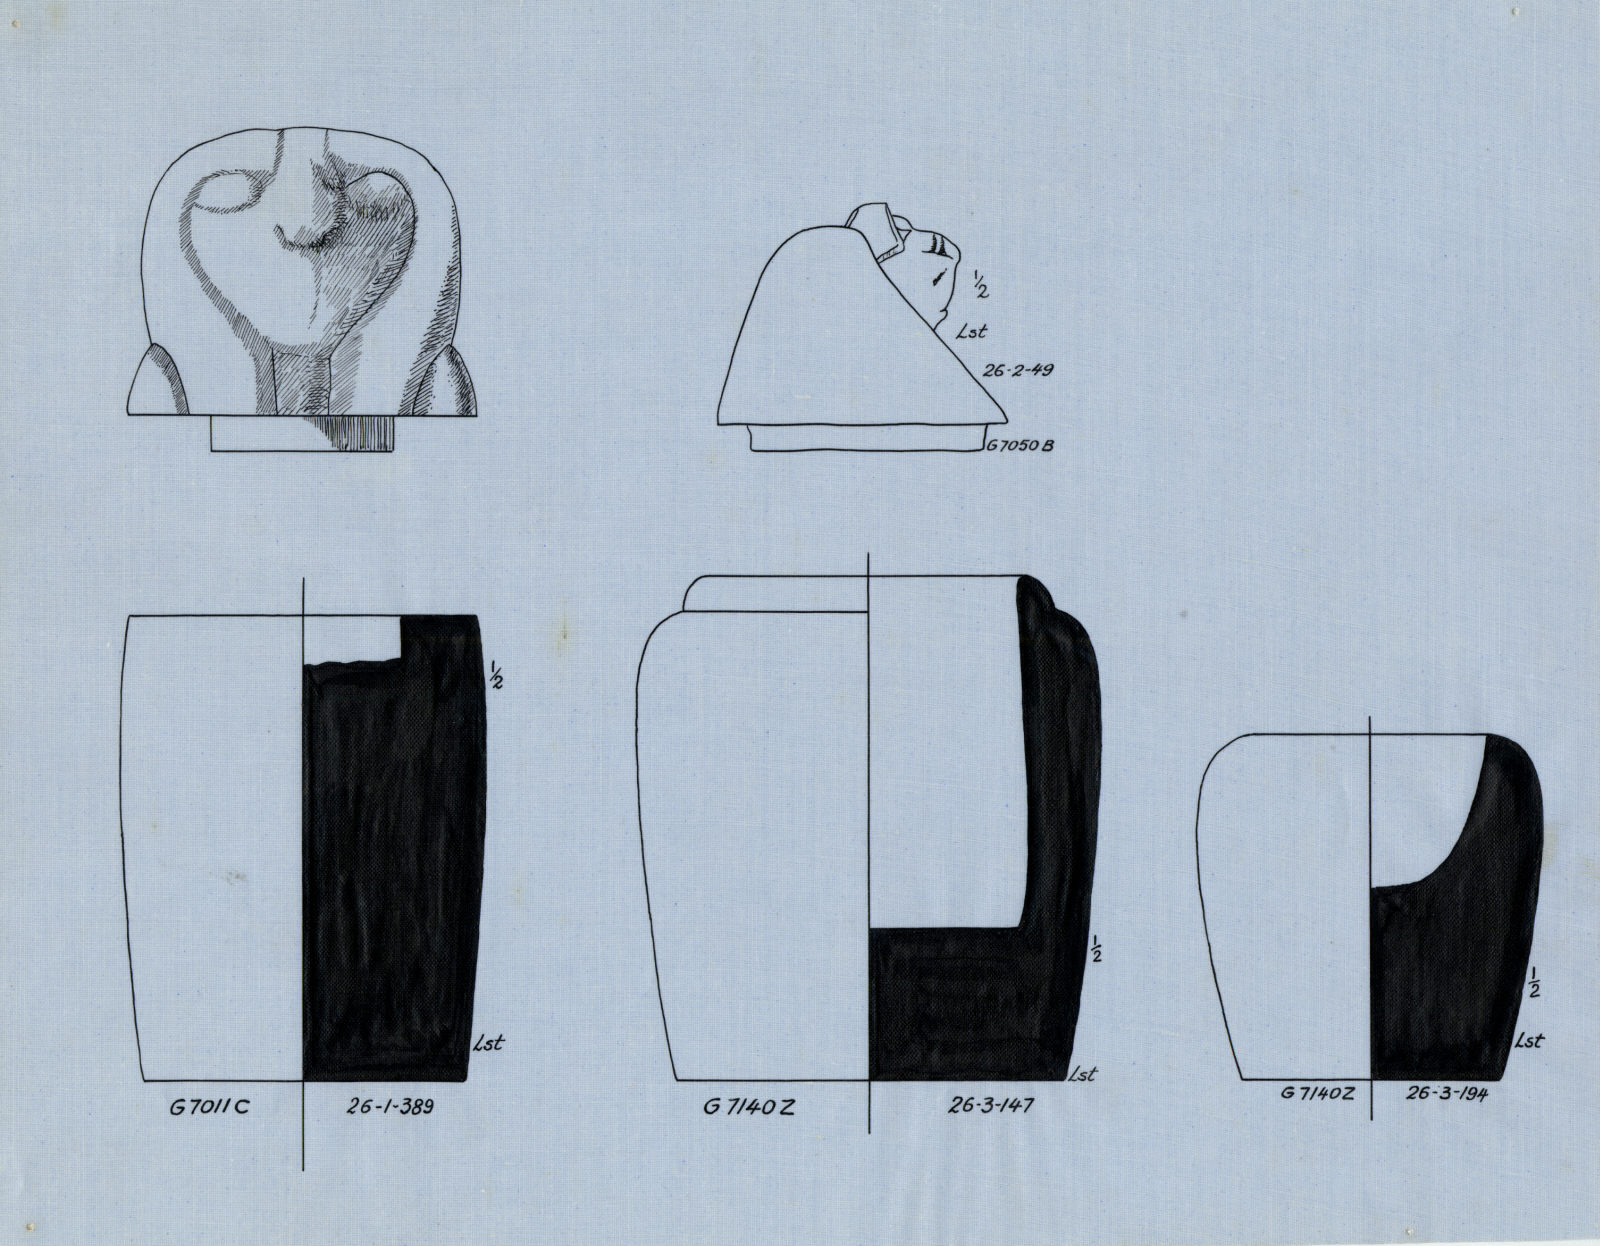 Drawings: Canopic jars and lids, limestone, from G 7011, Shaft C; G 7140, Shaft Z (= G 7135); G 7050, Shaft B